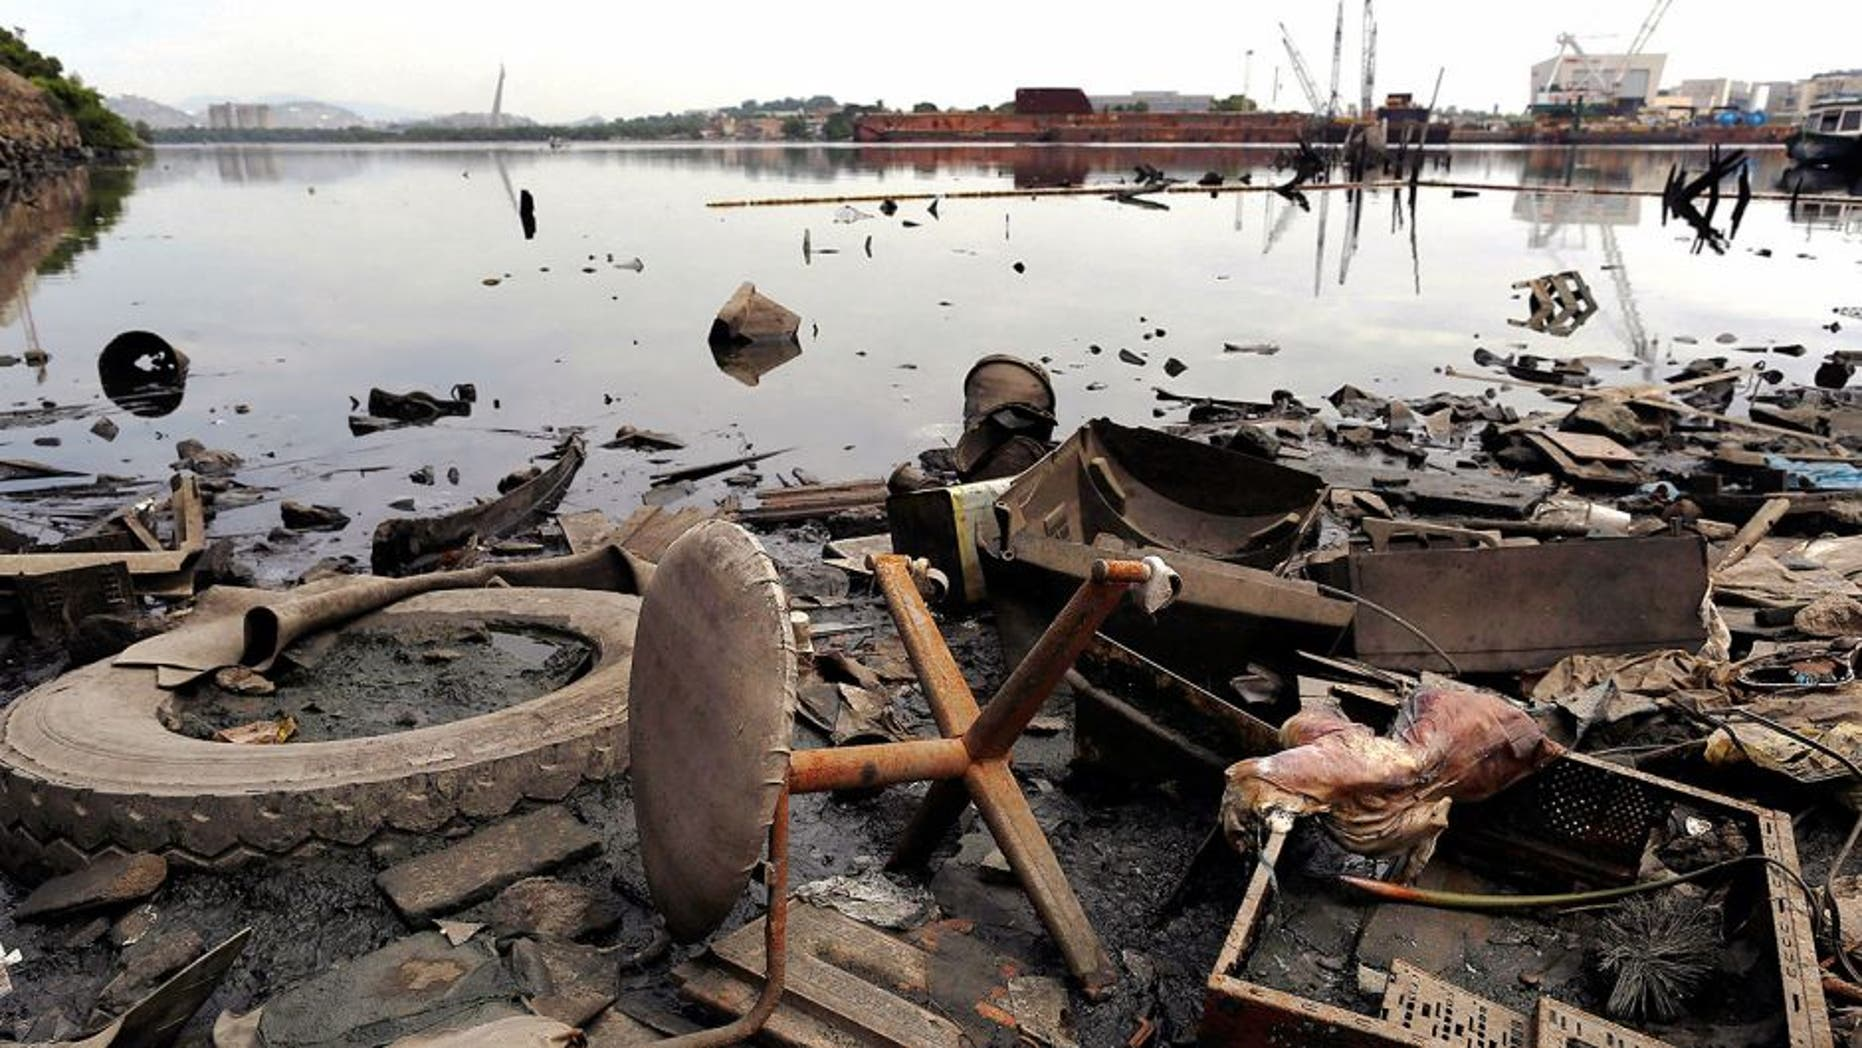 Trash litters the shore of Guanabara Bay in the Caju neighborhood of Rio de Janeiro, Brazil, Wednesday, Feb. 25, 2015. Rio de Janeiro's state environmental agency is trying to determine why thousands of dead fish have been found floating in waters where next year's Olympic sailing events are to be held. The fish were discovered Tuesday during a routine water testing of the sewage- and trash-filled bay. (AP Photo/Leo Correa)